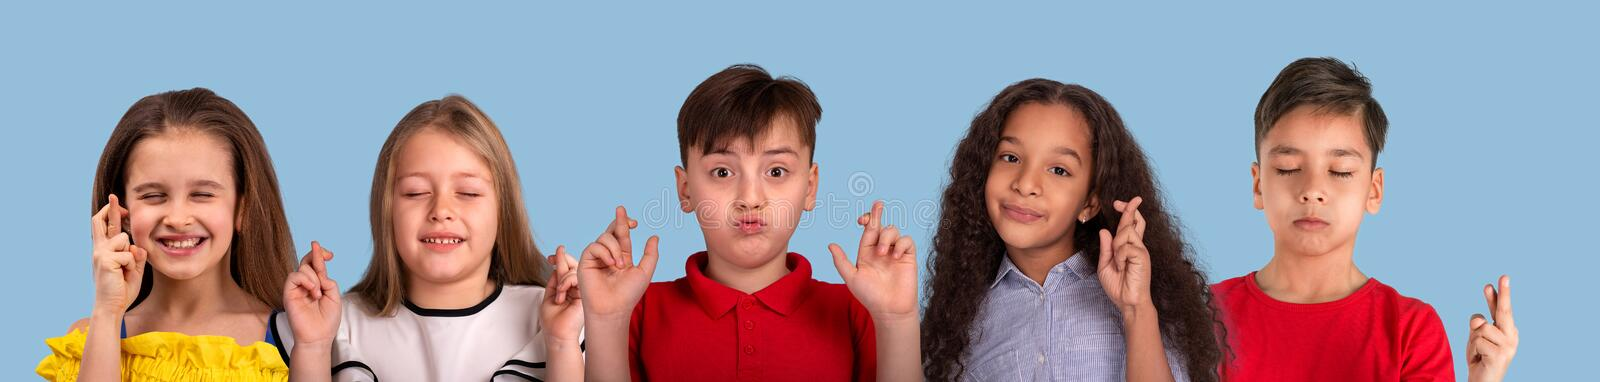 Collage  of  studio emotion portraits  of Multi-ethnic group of schoolchild`s,  on blue background stock images